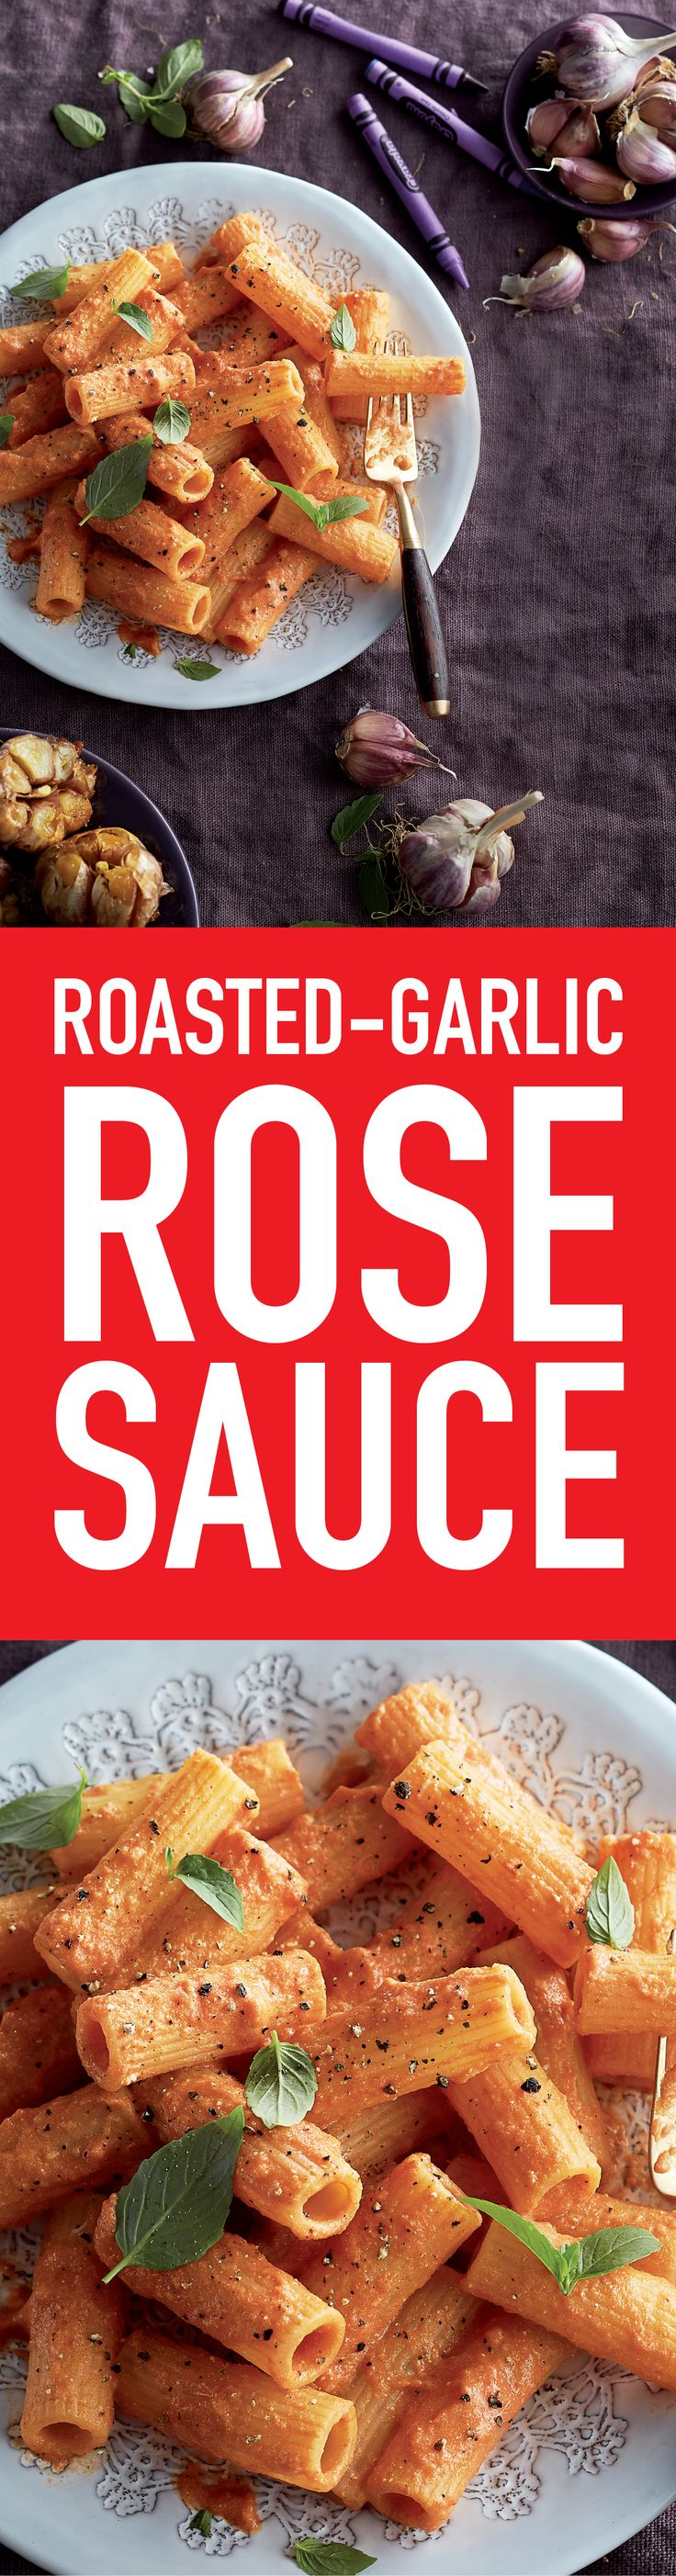 With the help of a few simple ingredients you likely have on hand, prepare rich and creamy restaurant-style Roasted-Garlic Rosé Sauce.